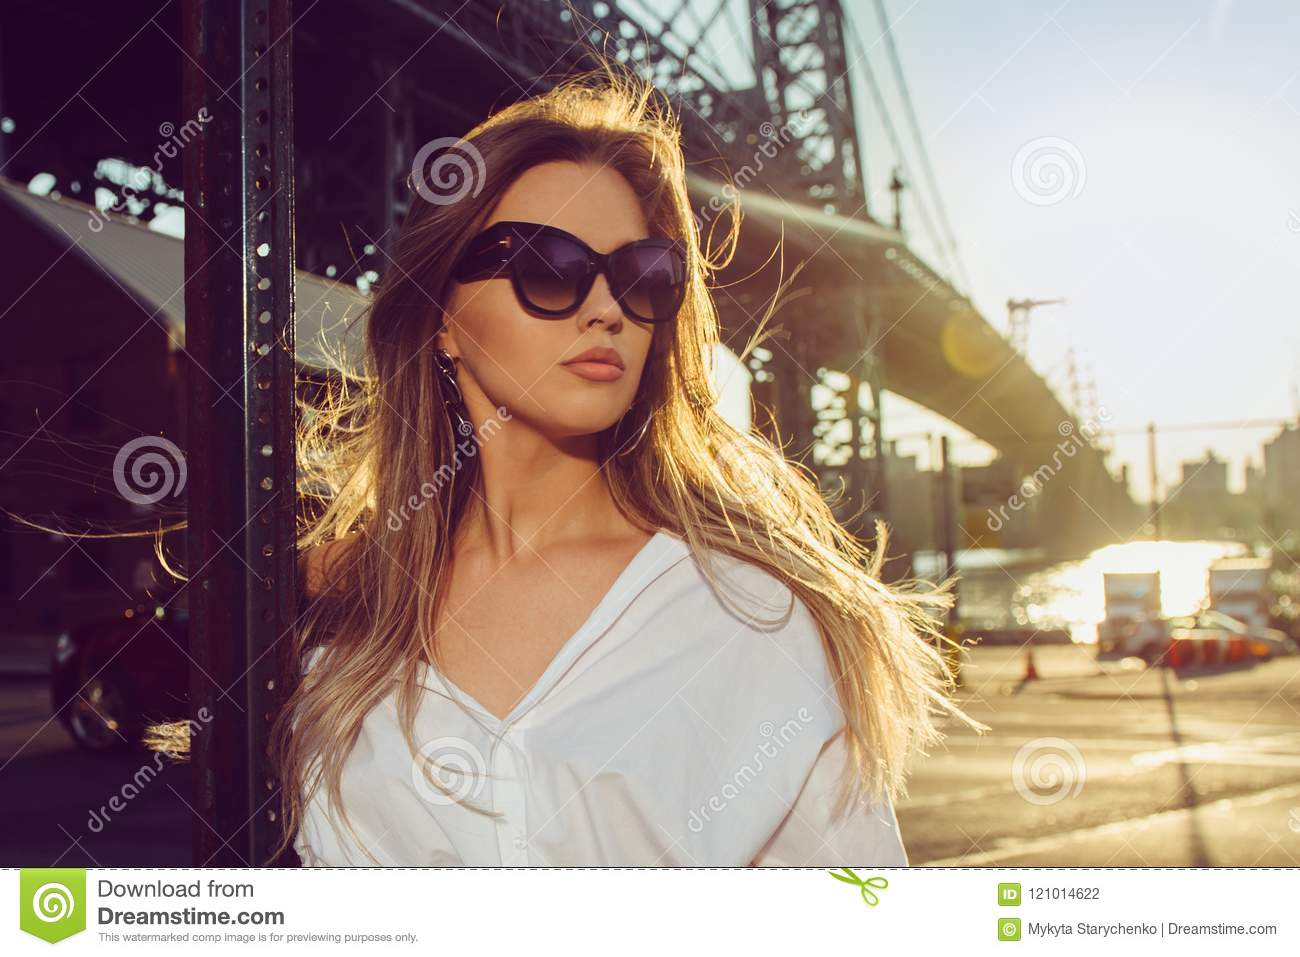 Elegant woman wearing sunglasses in the city at hot summer dayю